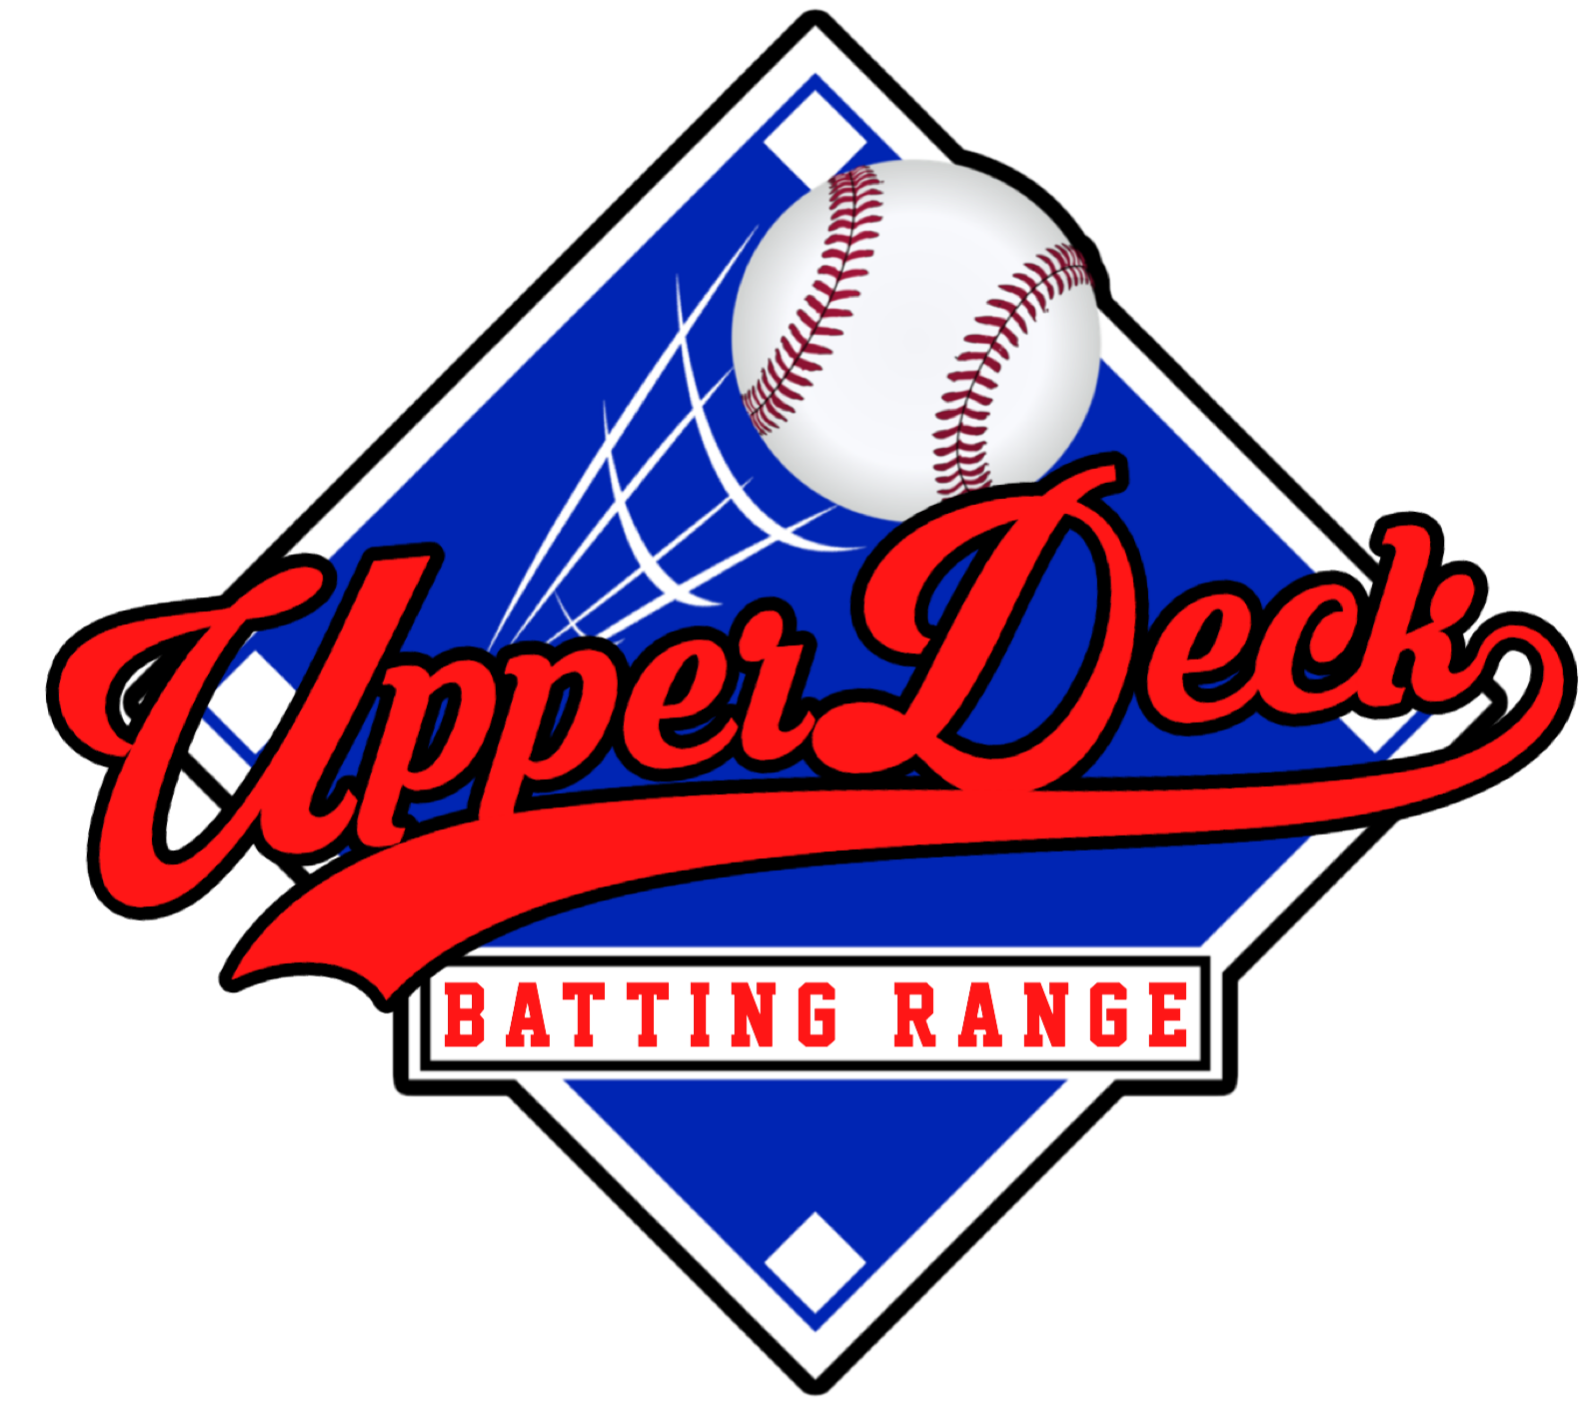 THE UPPERDECK BATTING RANGE